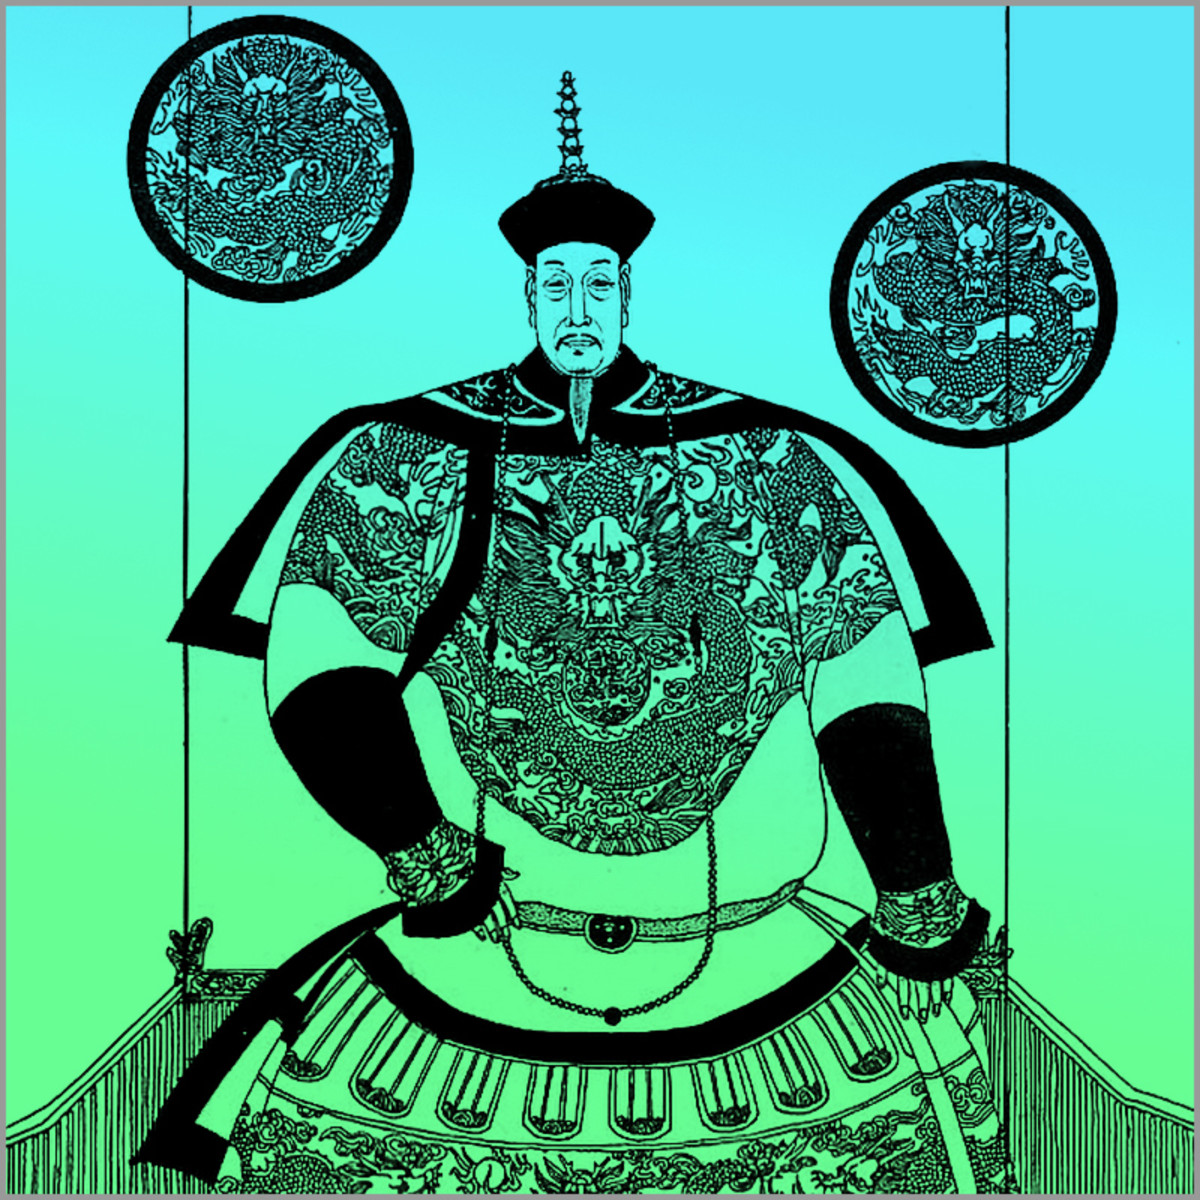 """Rather full of himself, Emperor Qianlong styled himself as the """"old man of 10 perfections"""" in his later years. However, he did reign over one of China's most prosperous eras."""